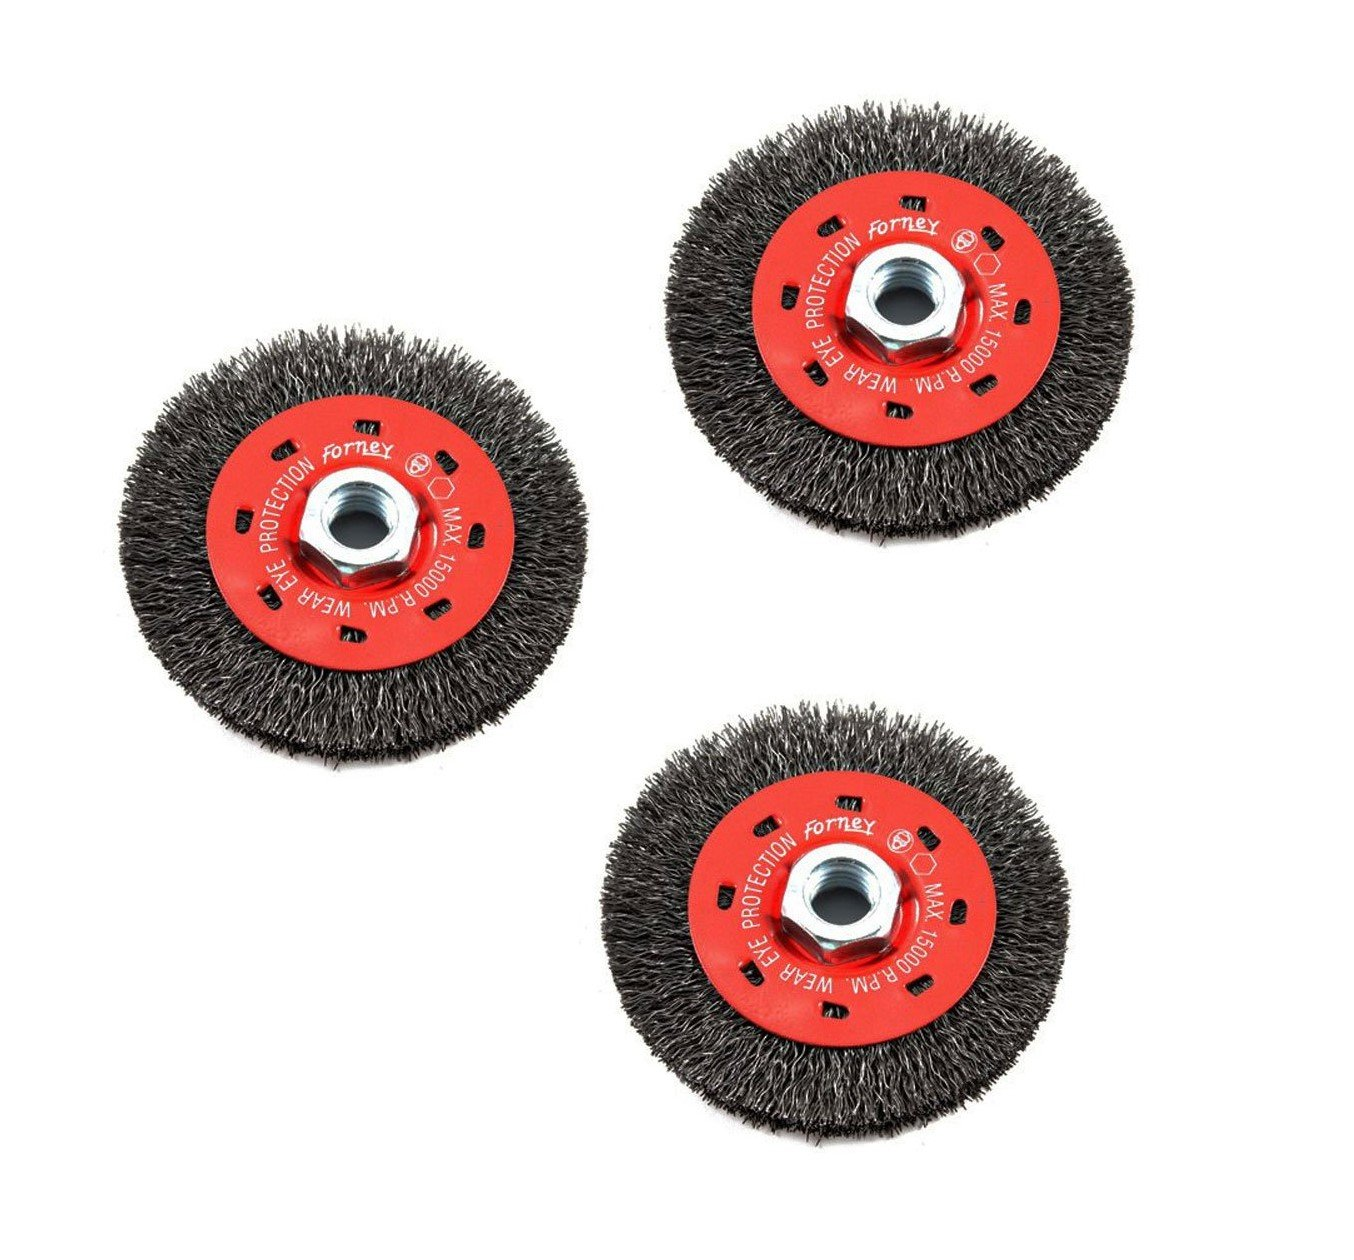 Forney 72788 Wire Wheel Brush, Coarse Crimped with 5/8-Inch-11 Threaded Arbor, 4-Inch-by-.014-Inch, Sold as 3 Pack by Forney